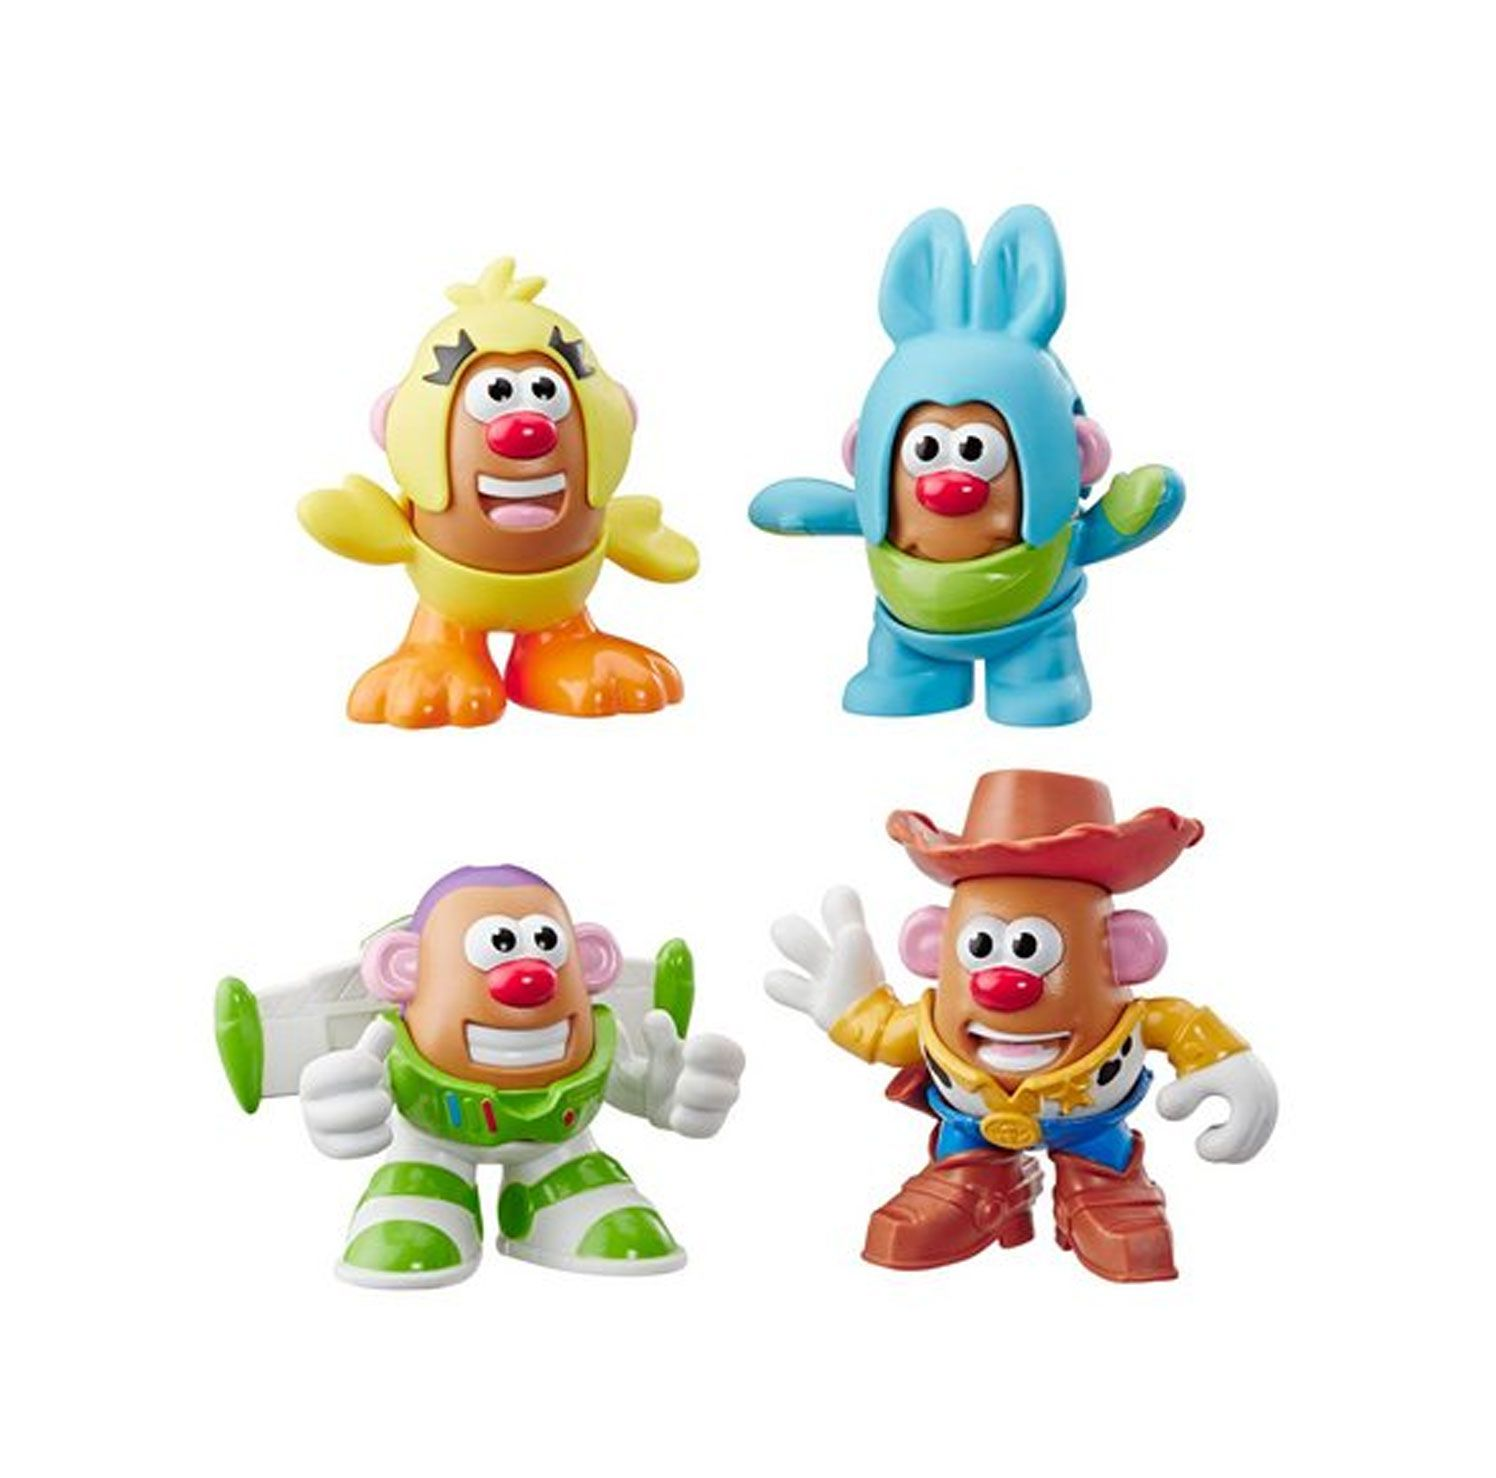 PACK MINI BONECOS MR POTATO HEAD TOY STORY 4 HASBRO REF:3065